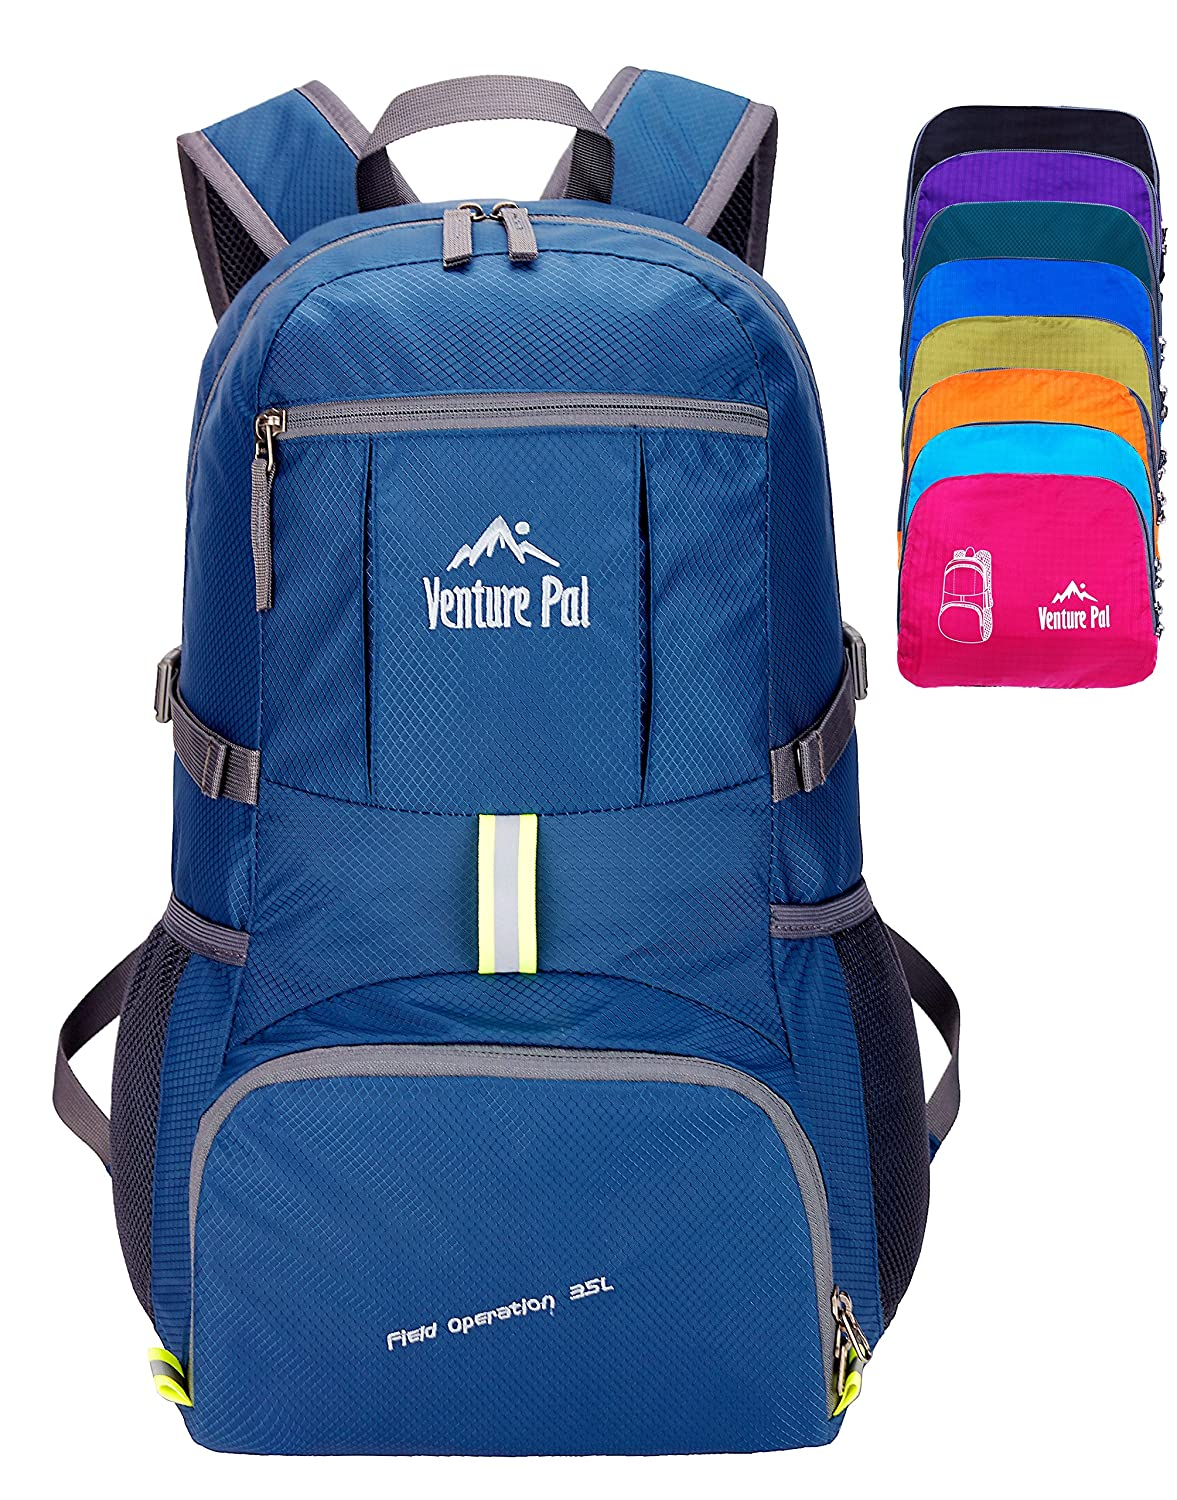 Hiking Backpack For Toddlers